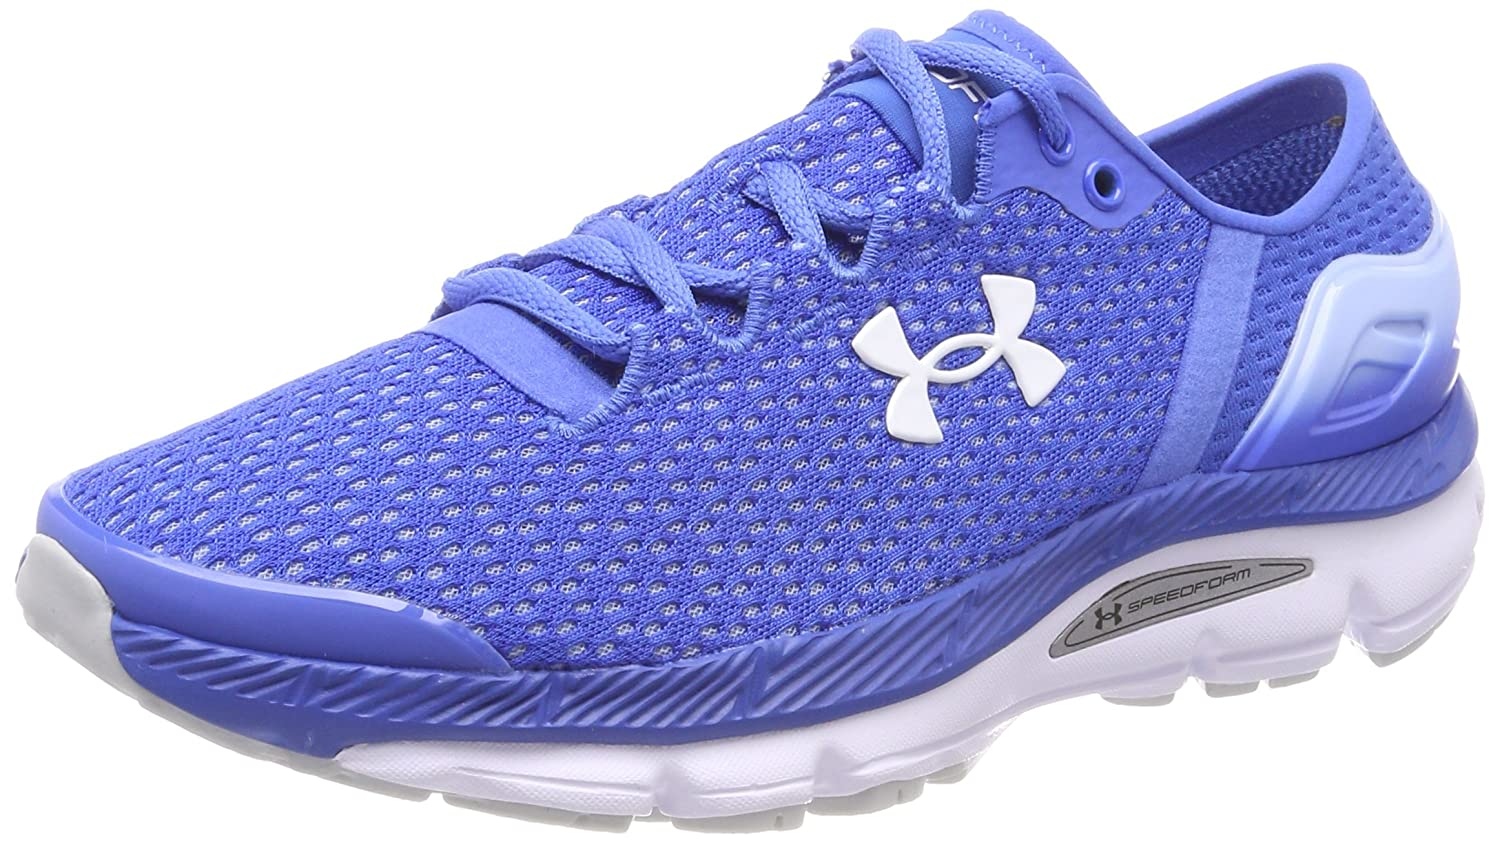 Under Armour Women's Speedform Intake 2 Running Shoe B071Z18JQP 12 B(M) US|Blue